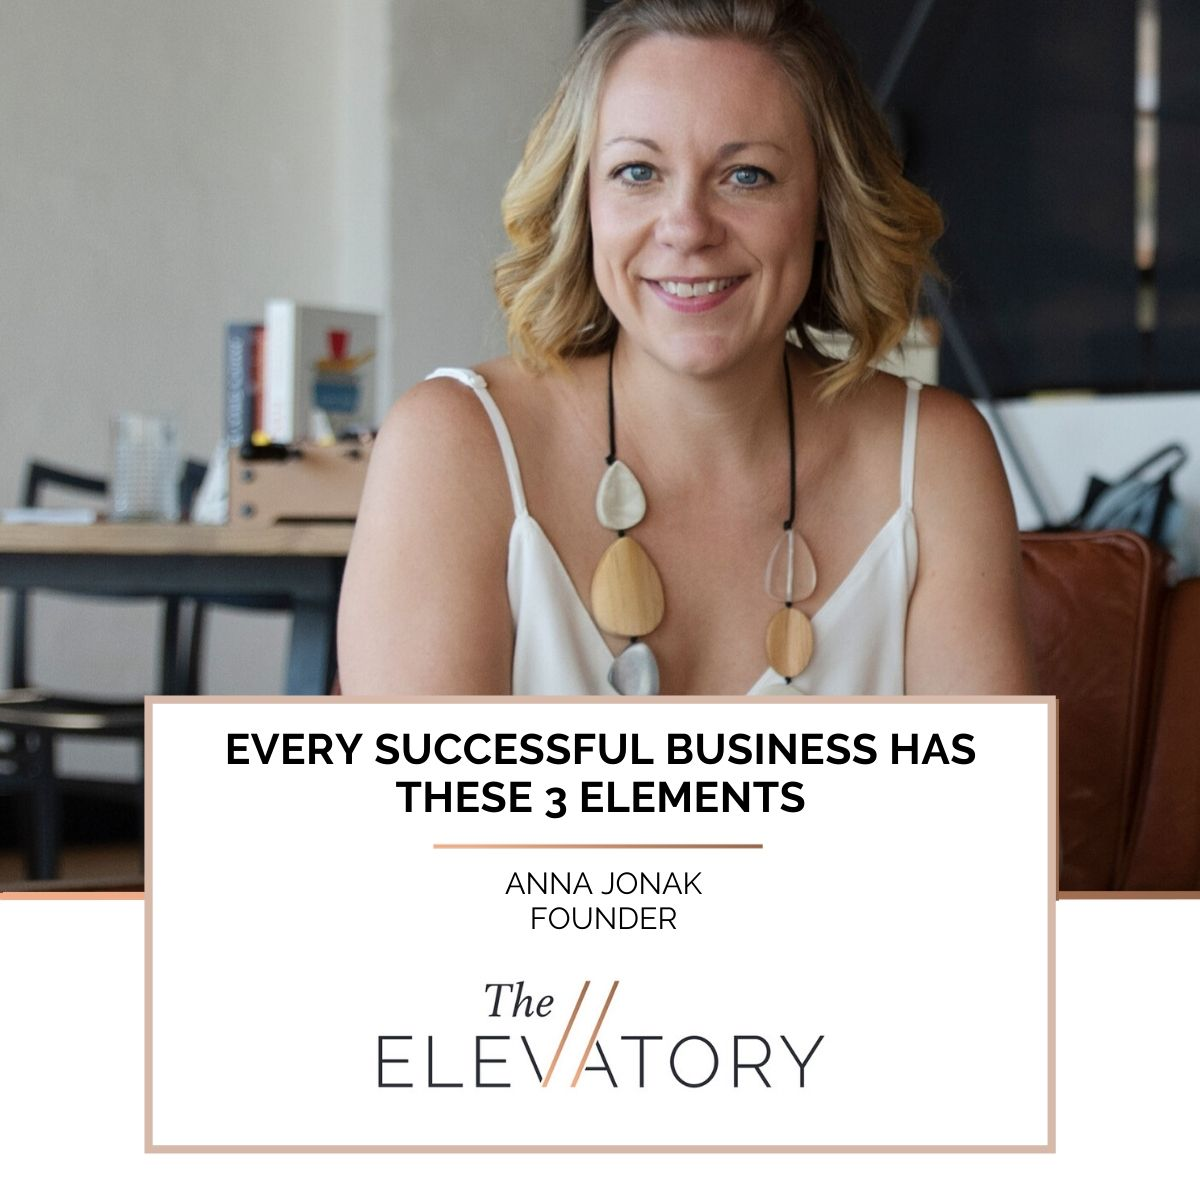 Every successful business has these 3 elements